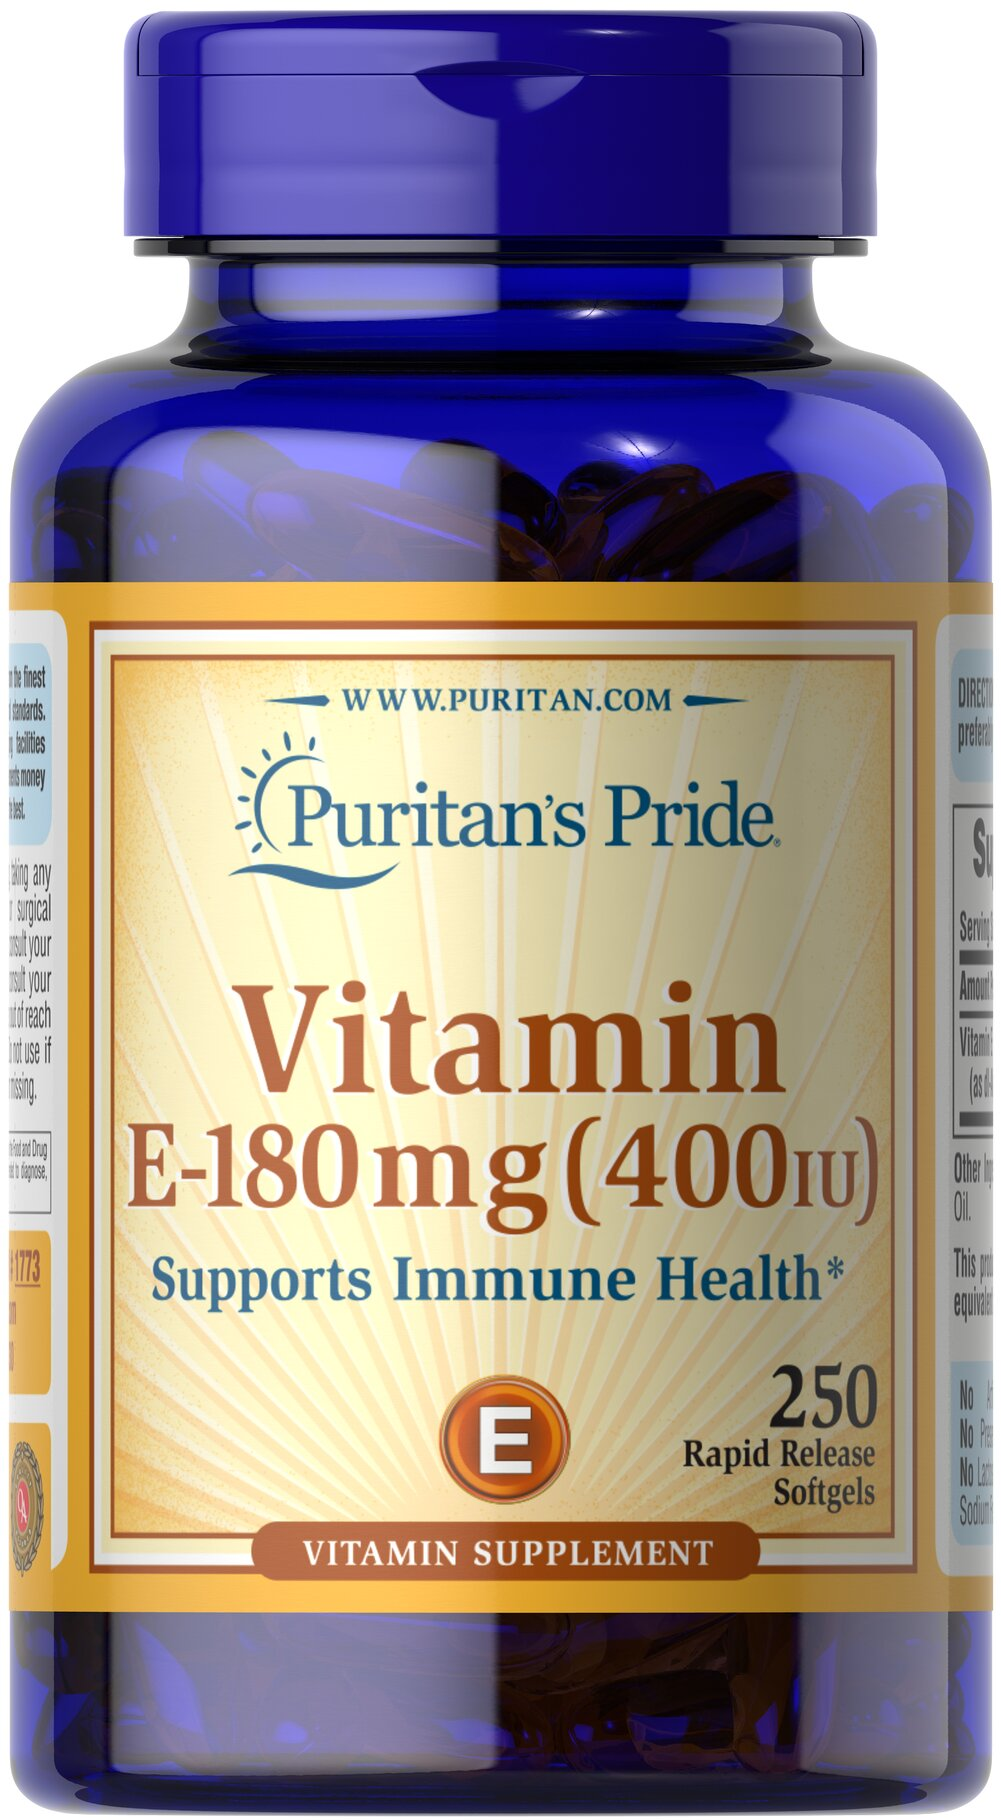 Vitamin E-400 IU <p>Our Vitamin E supplement features dl-Alpha Vitamin E, a synthetic form  of Vitamin E. Vitamin E is a potent antioxidant that helps fight free  radicals.** Oxidative stress caused by free radicals may contribute to  the premature aging of cells. Vitamin E supports immune health and helps  support cardiovascular health.** Vitamin E also plays a role in  maintaining healthy blood vessels.** Some people, including those on  low-fat diets, may not be meeting the recommended